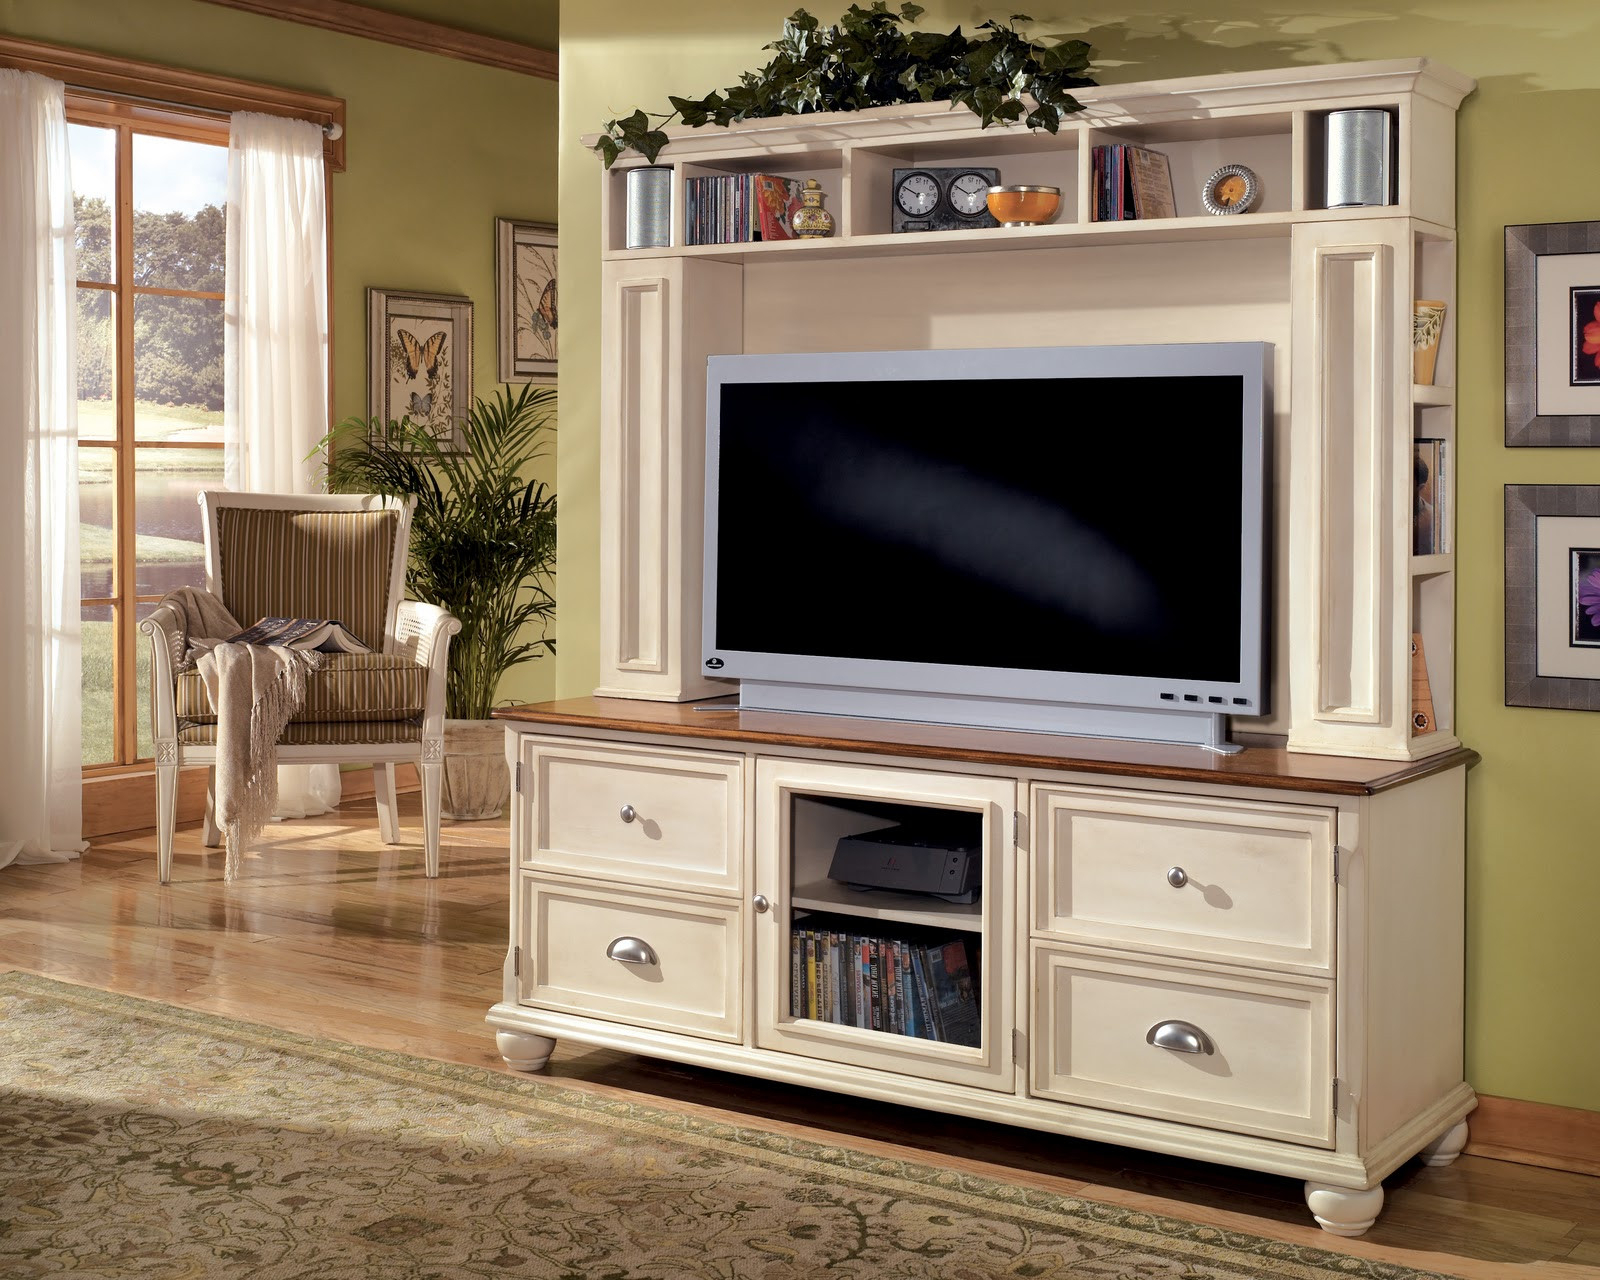 Fashionable Bedroom Tv Stands Stand Dresser Ikea Playroom Kallax White Rack Box Throughout Playroom Tv Stands (View 15 of 20)